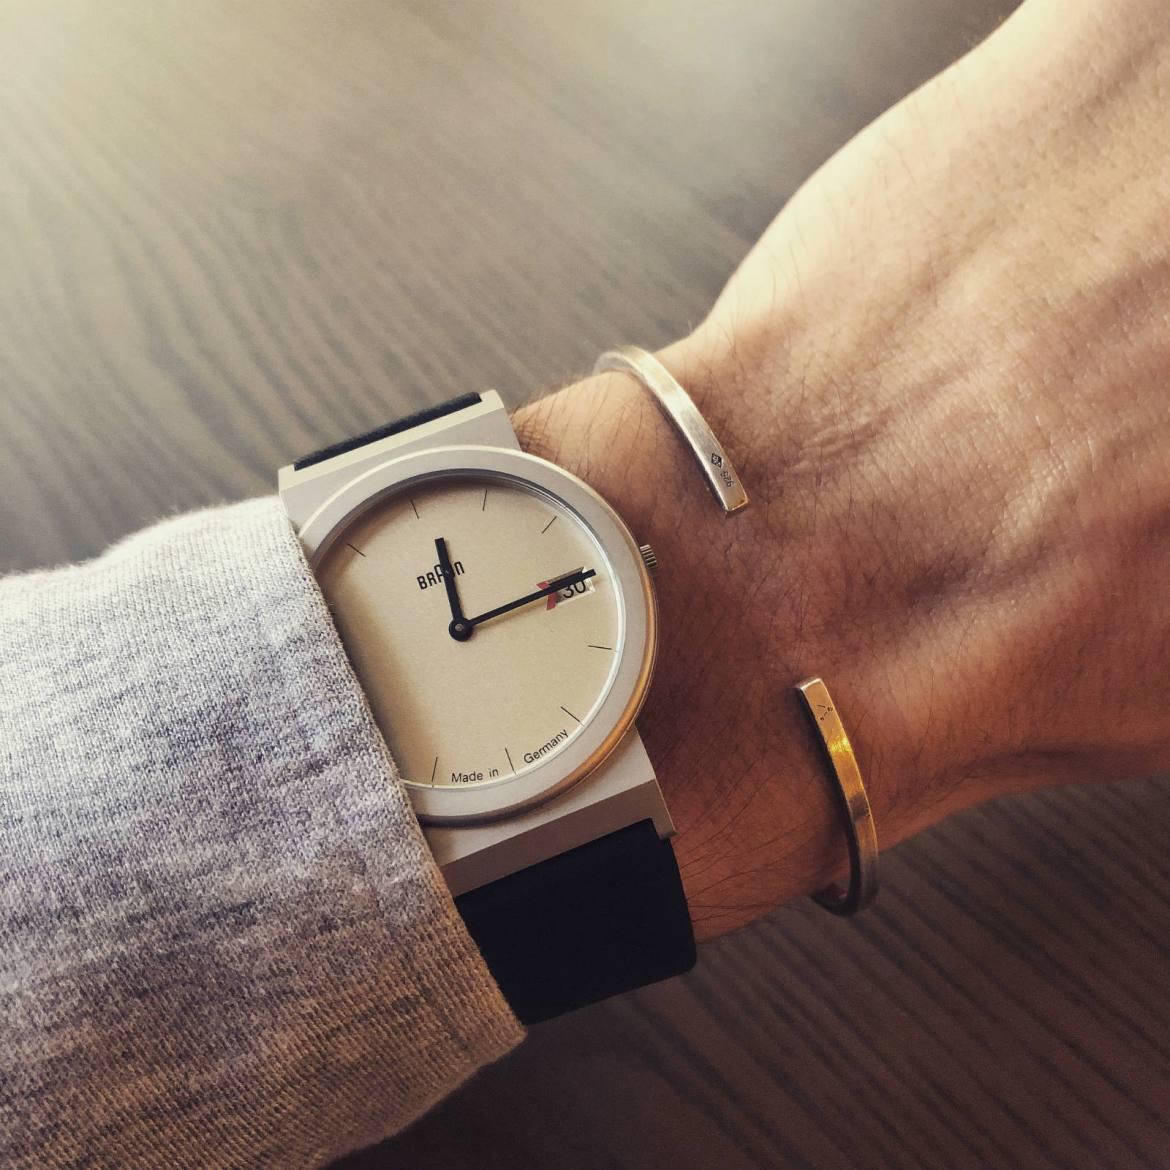 Braun AW50 watch and Le Gramme brushed sterling cuff